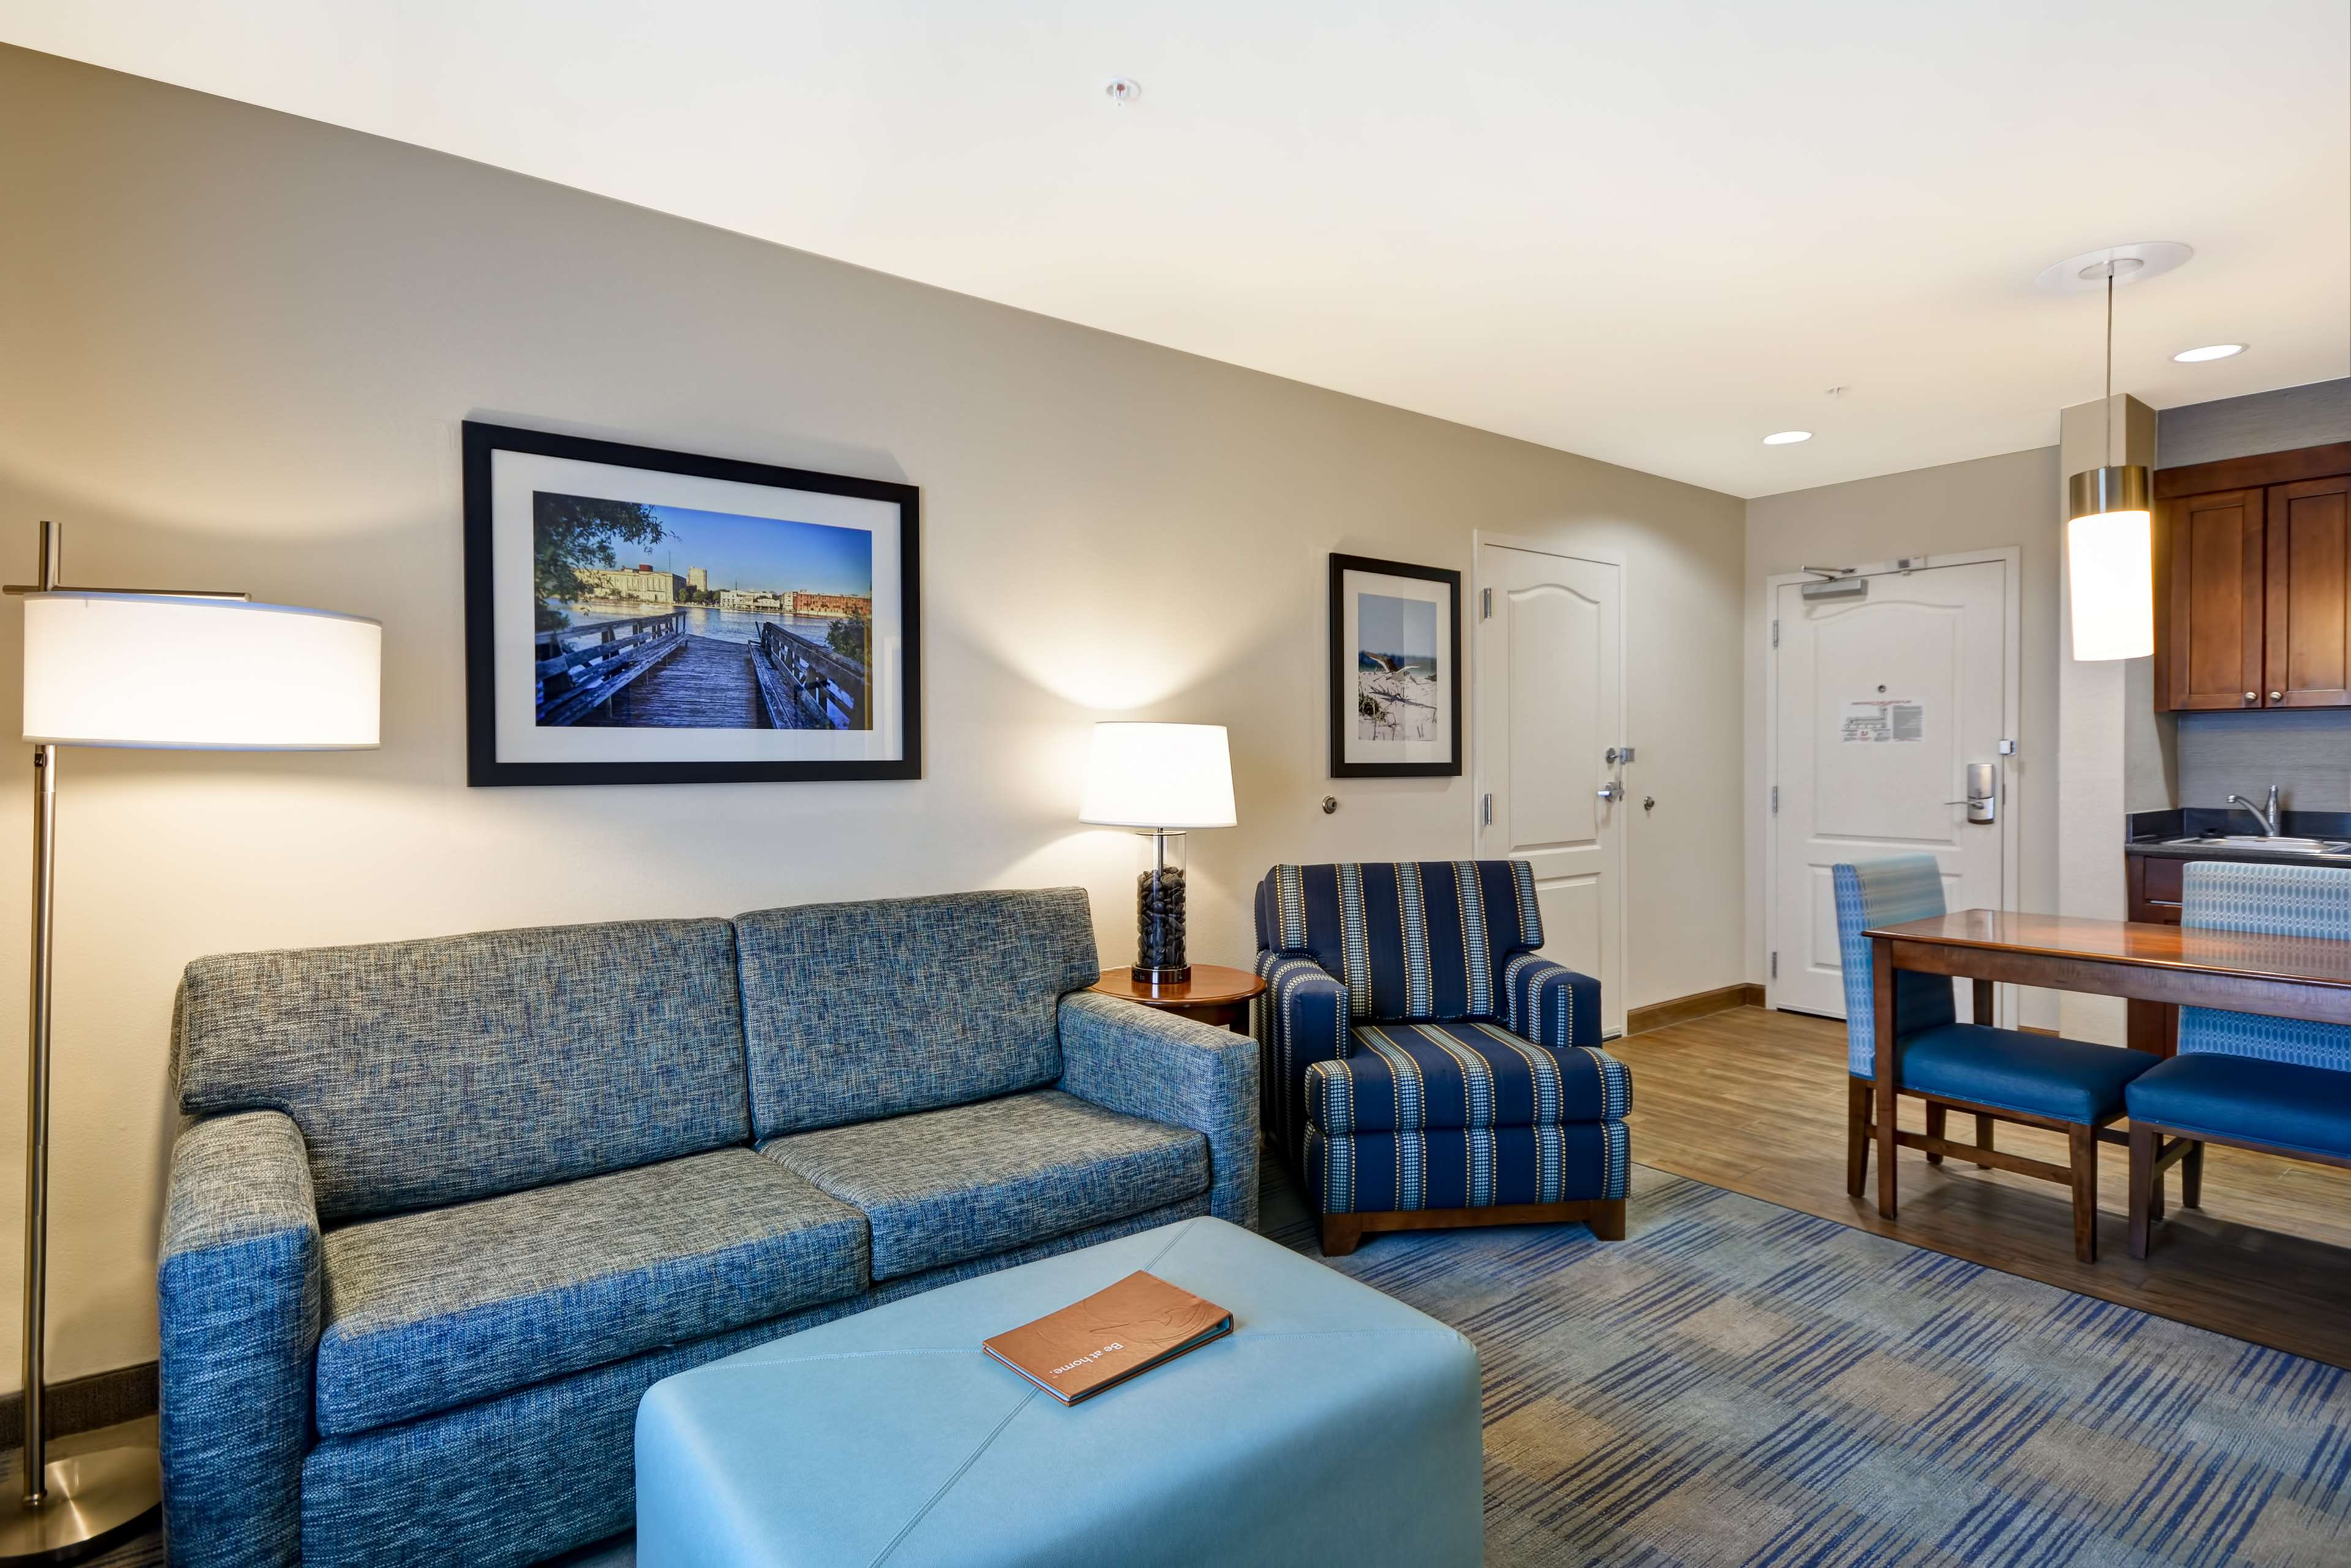 Homewood Suites by Hilton Wilmington/Mayfaire, NC image 25